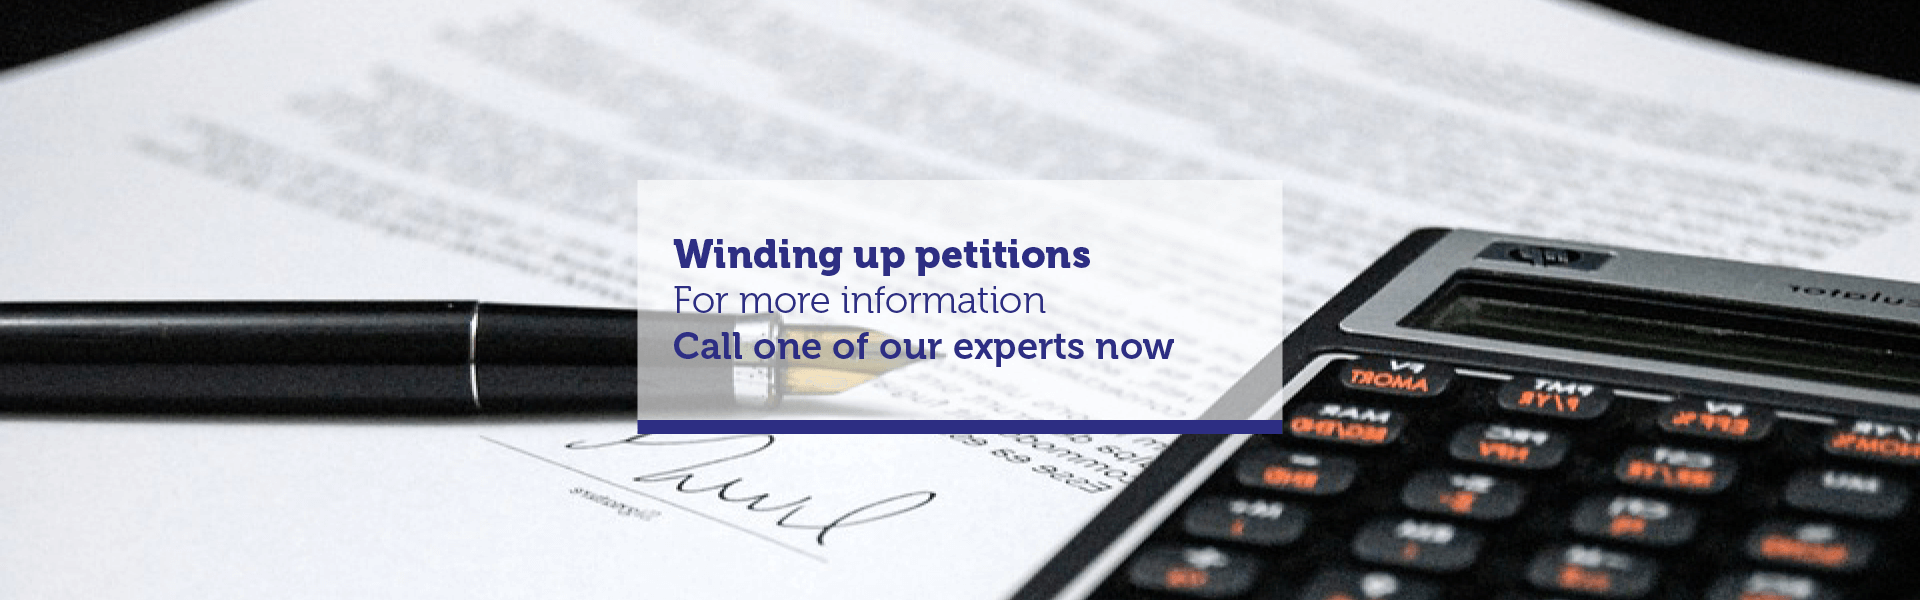 Winding Up Petitions